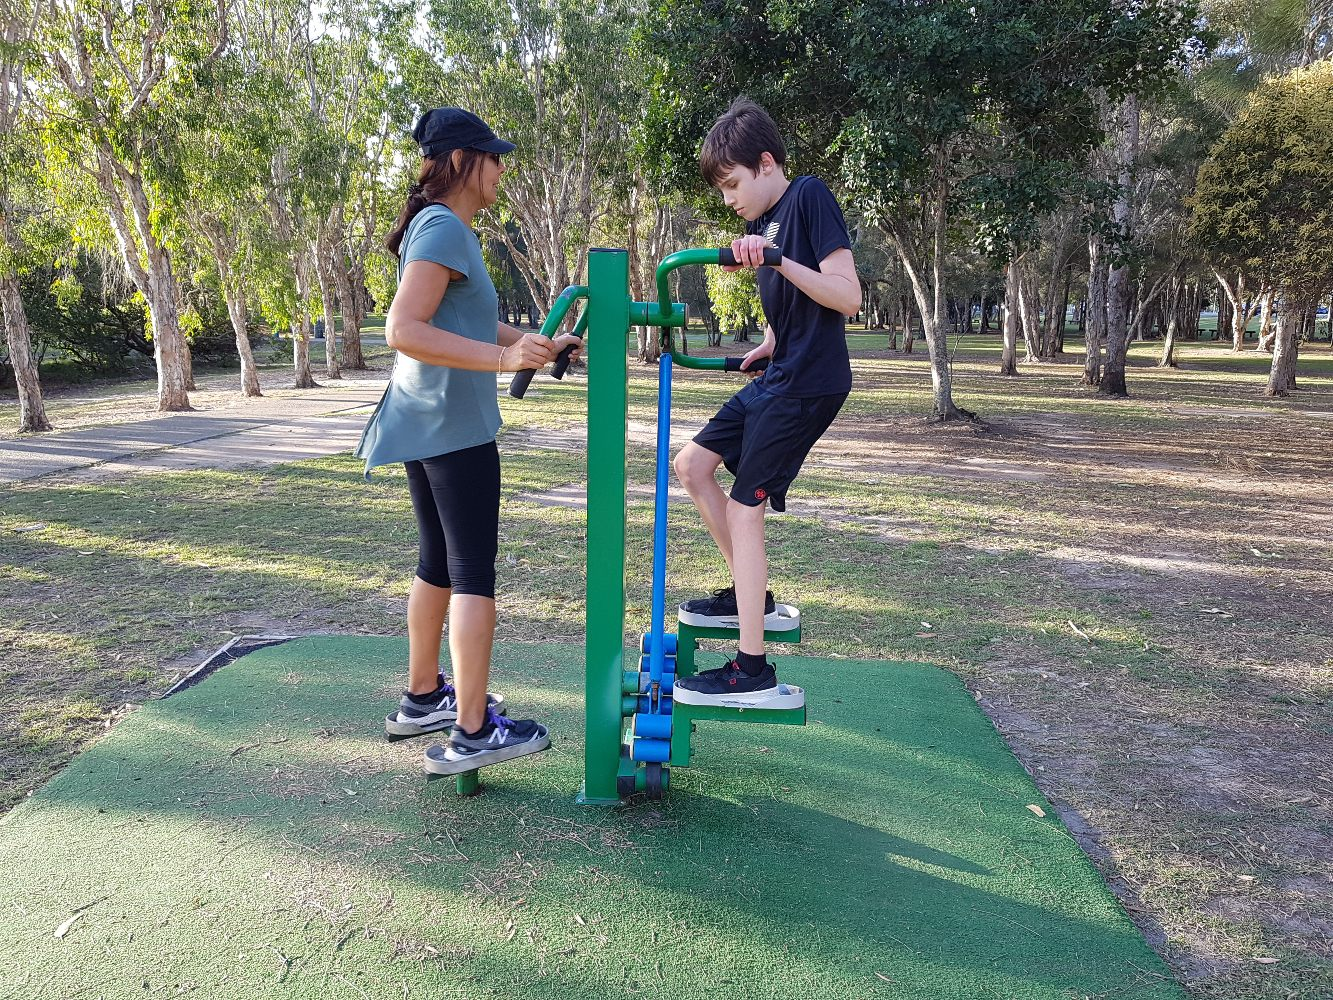 bec and boy at outdoor gym